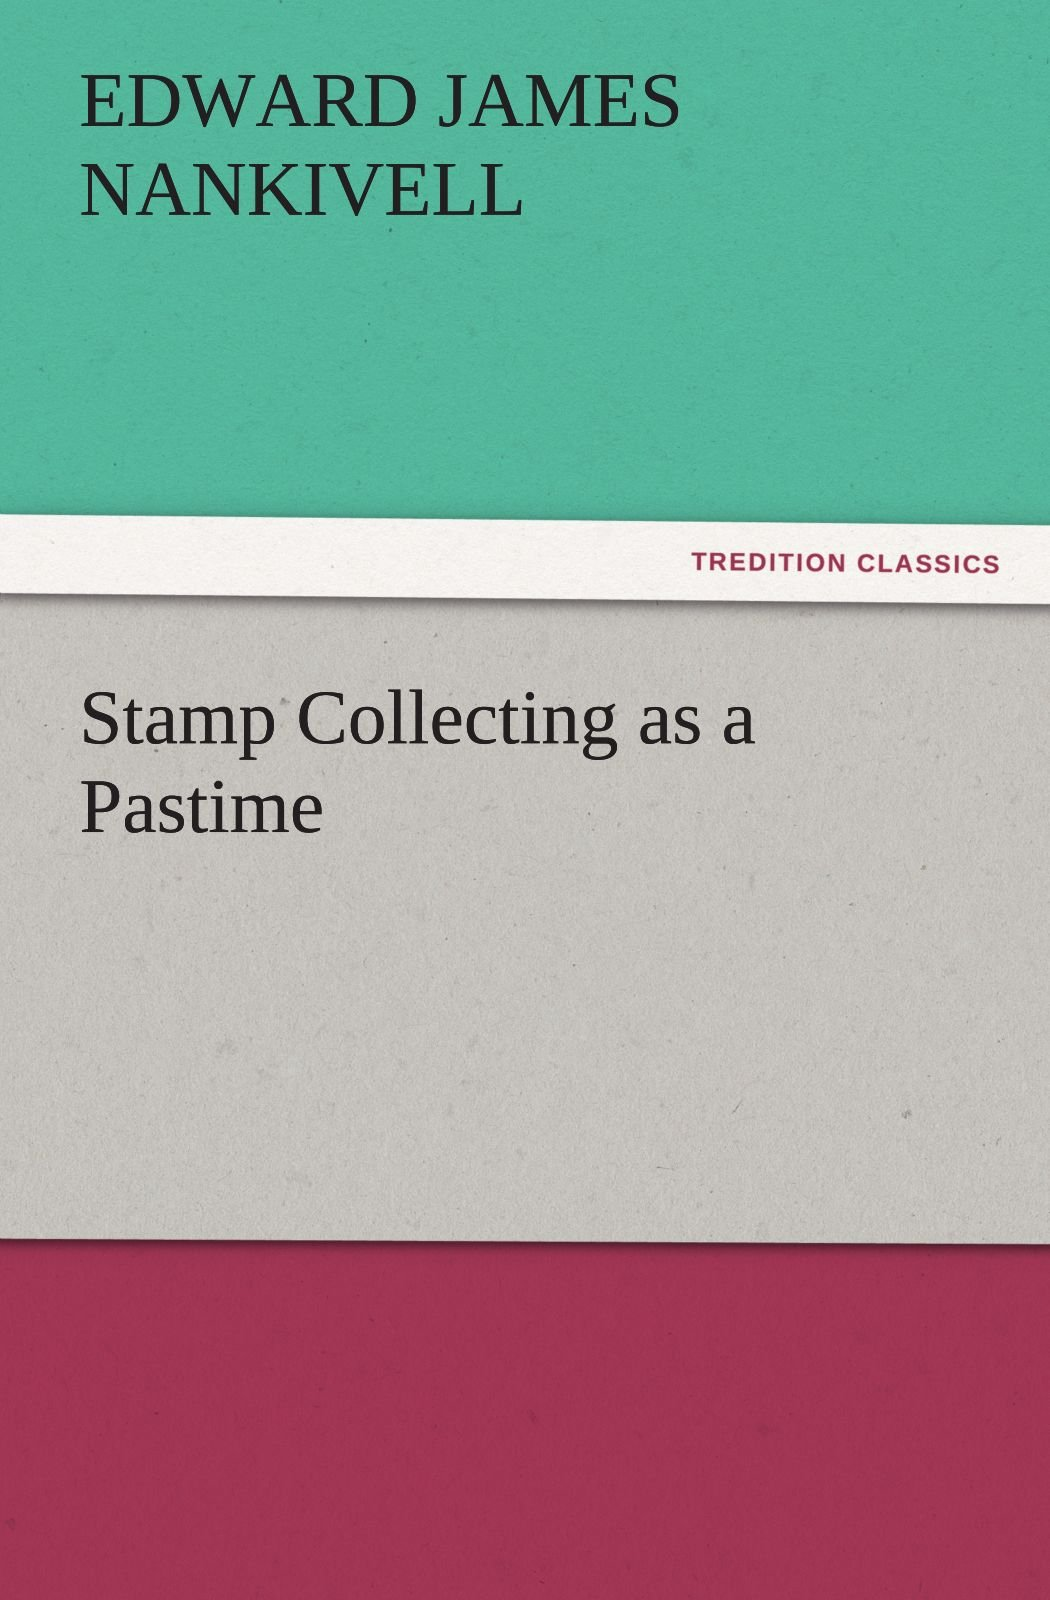 Stamp Collecting as a Pastime (TREDITION CLASSICS)